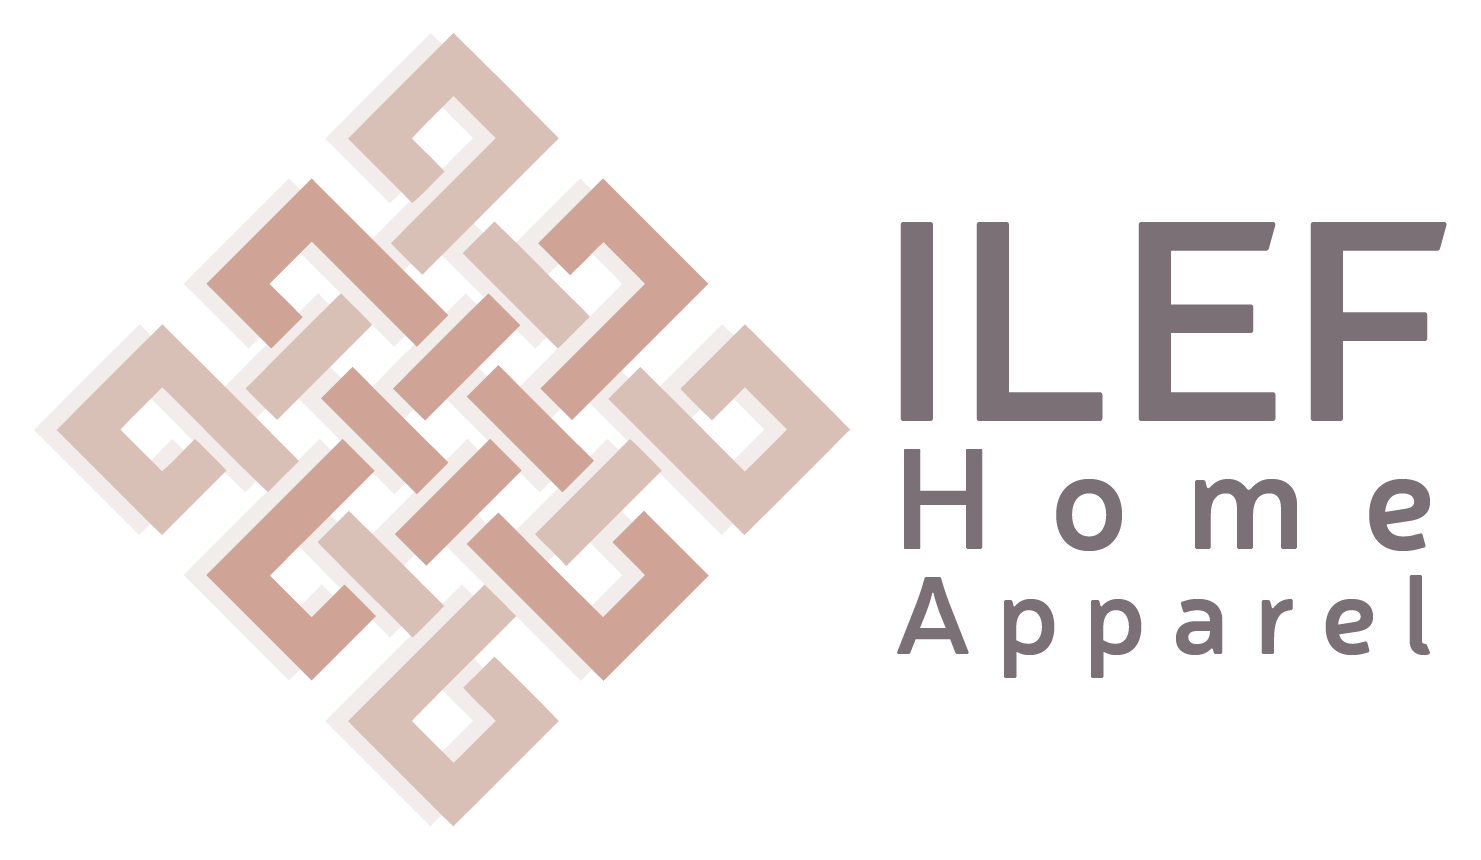 ILEF HOME APPAREEL